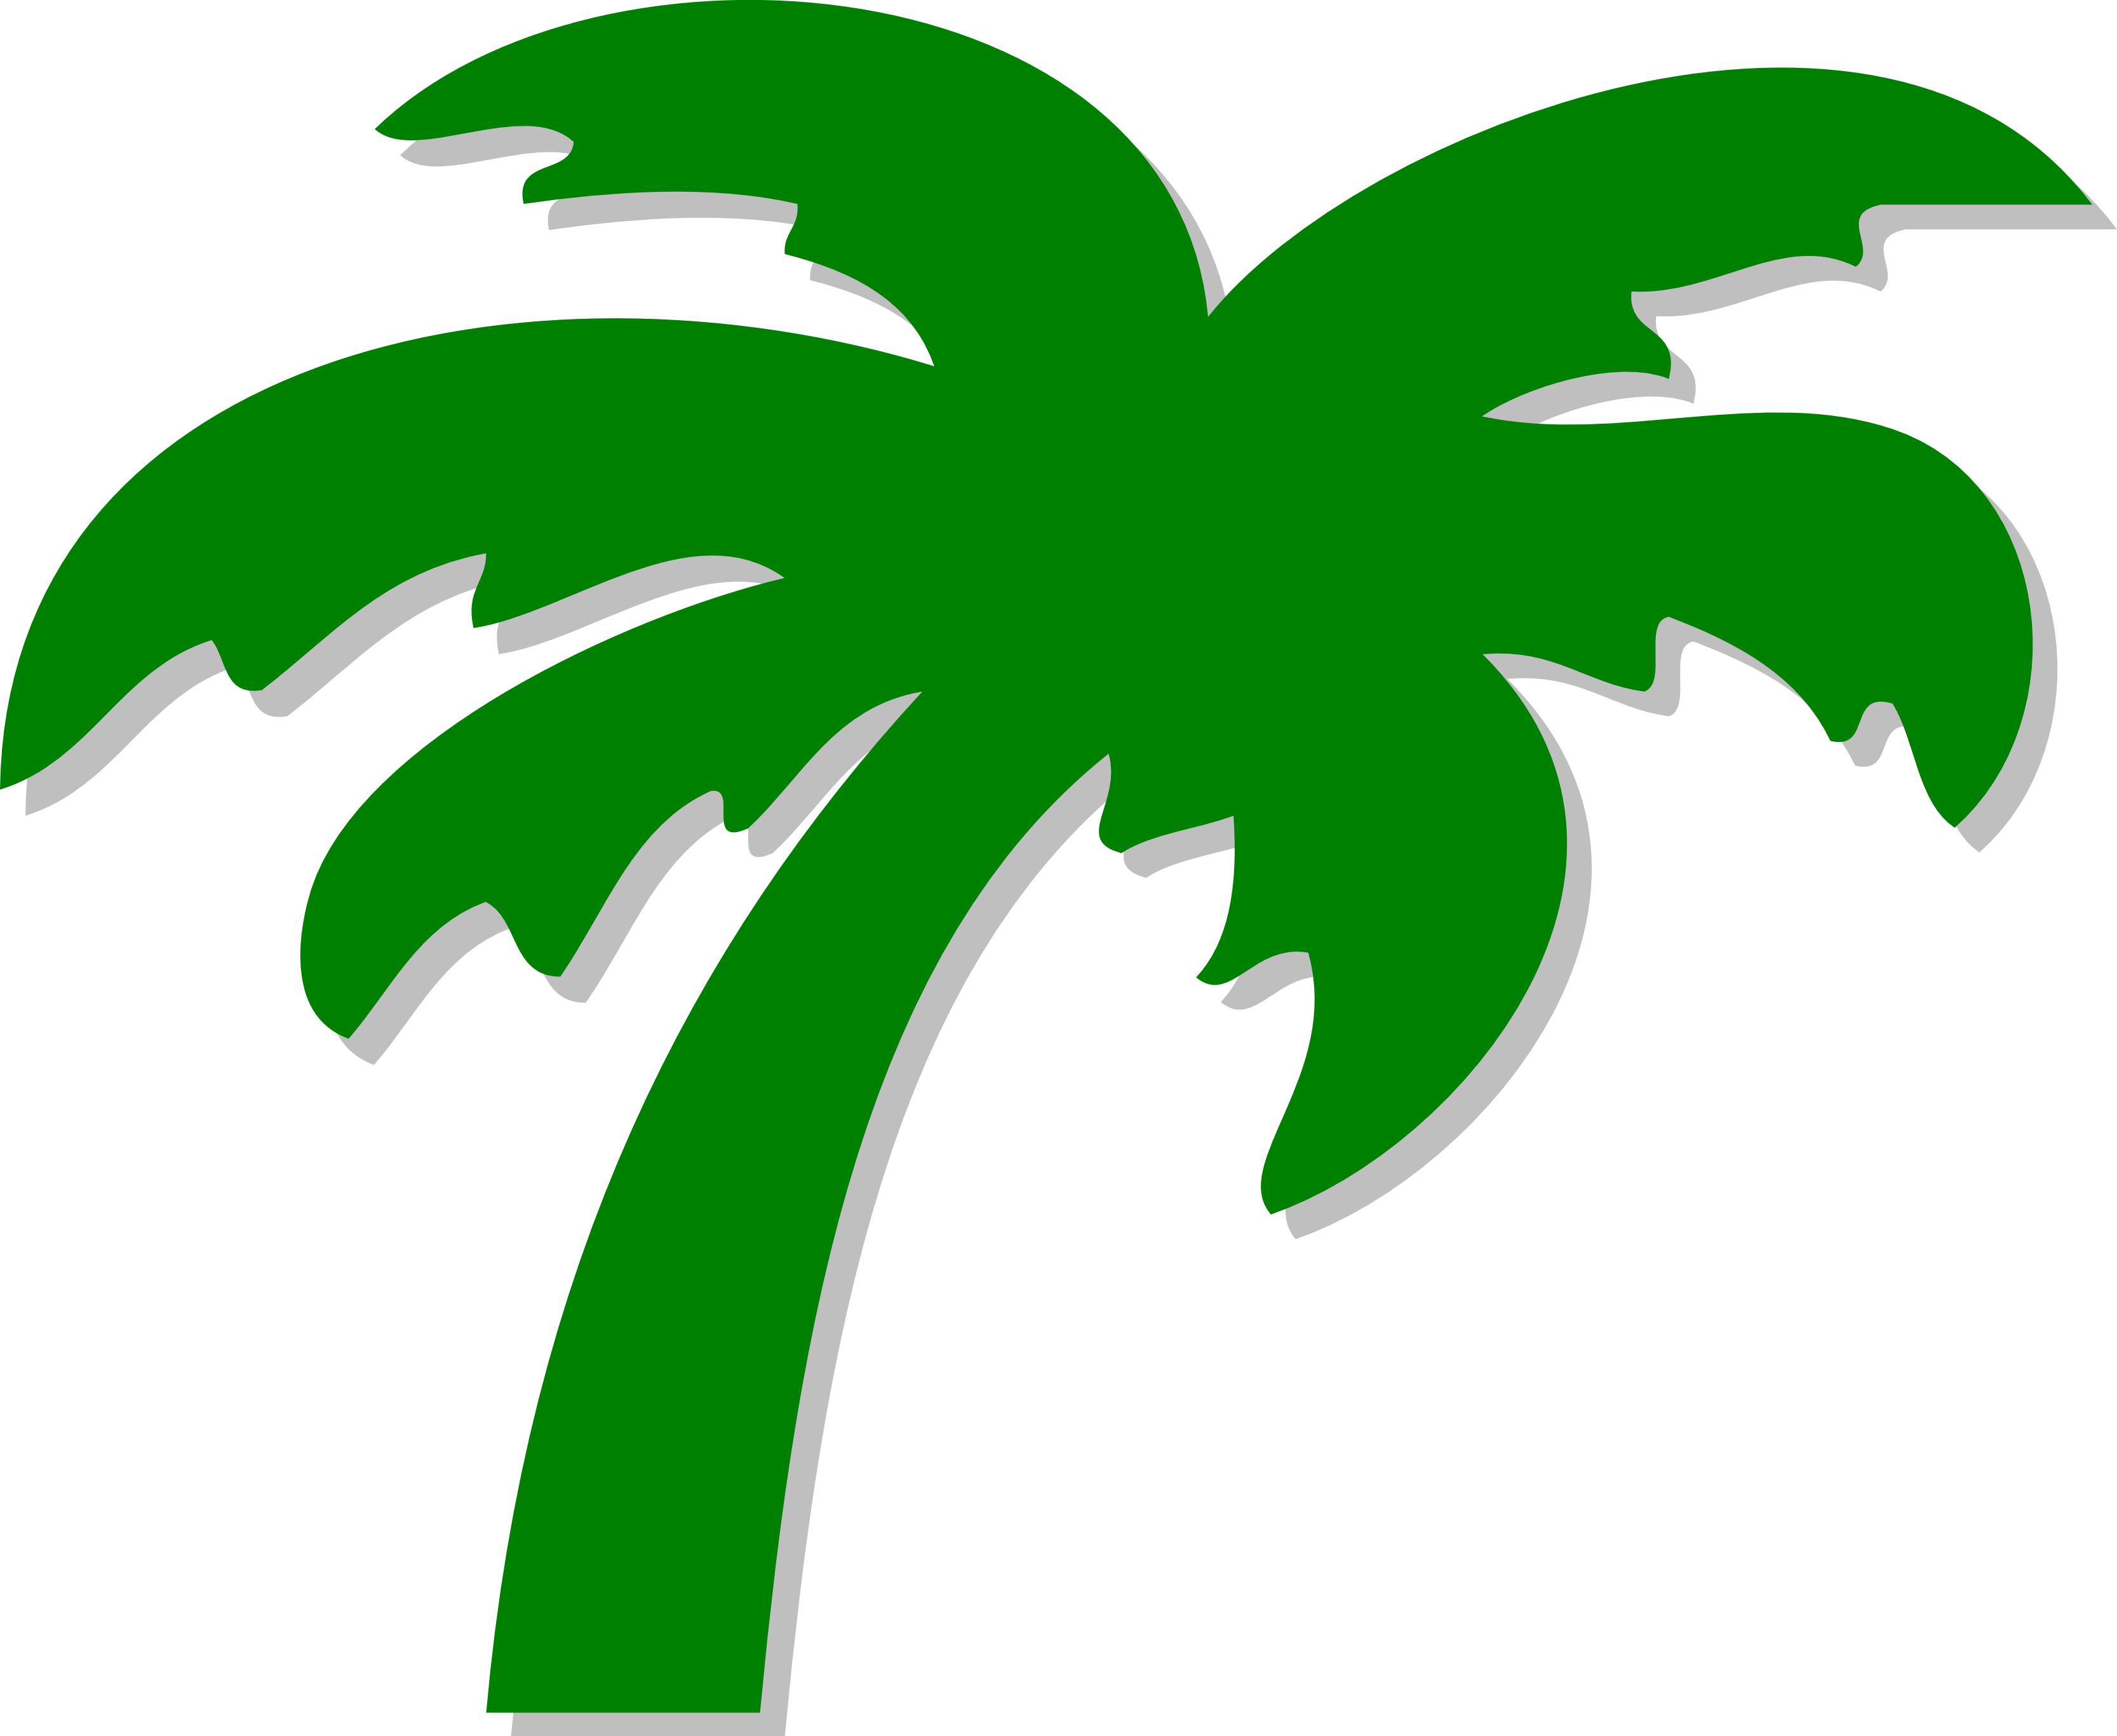 Palm Tree Clip Art-Palm Tree Clip Art-6